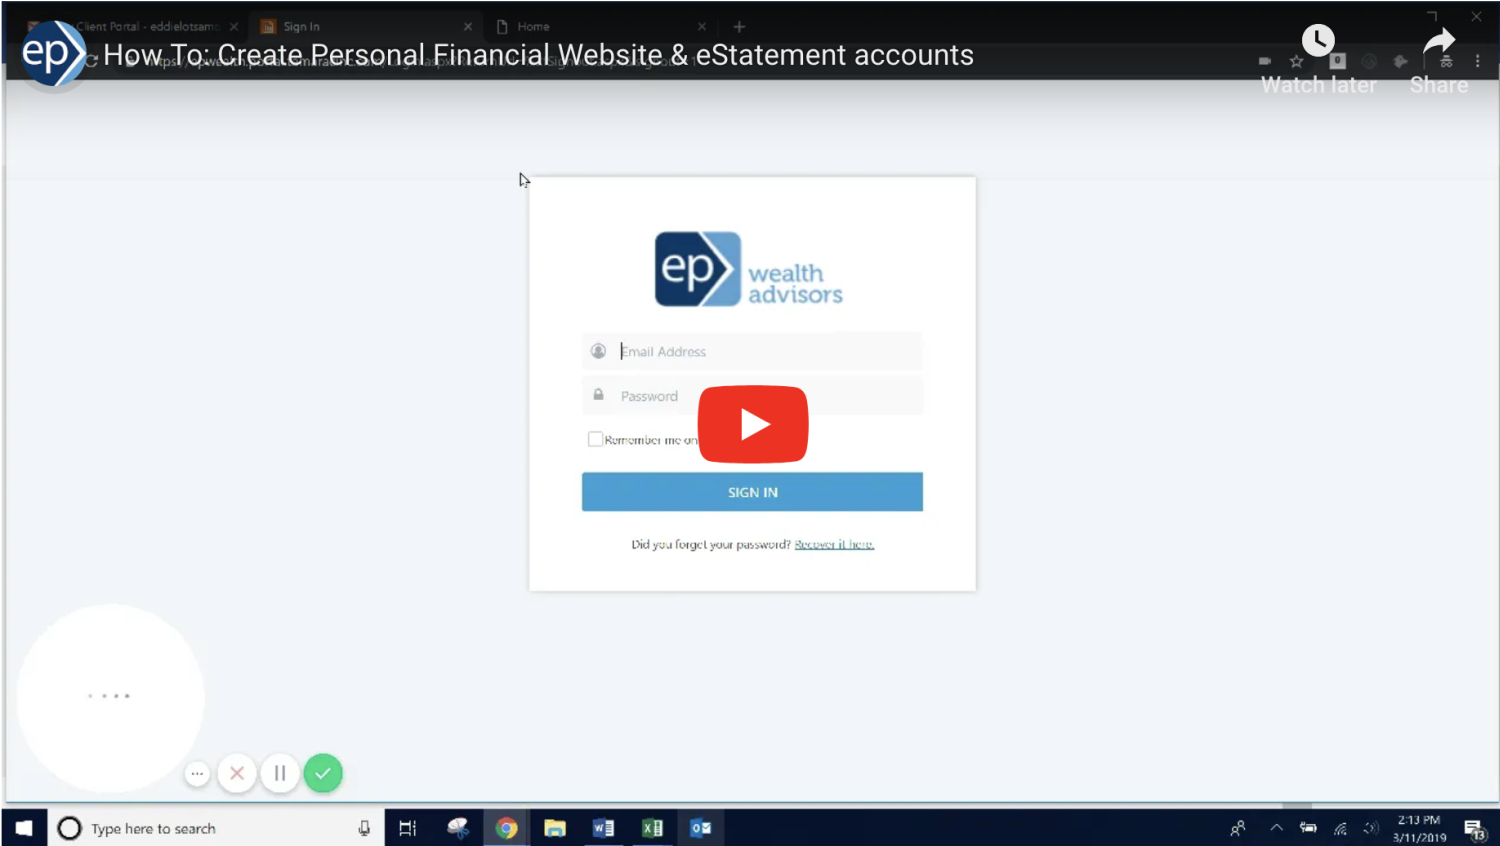 How To: Set Up Your Personal Financial Website & eStatements (video)